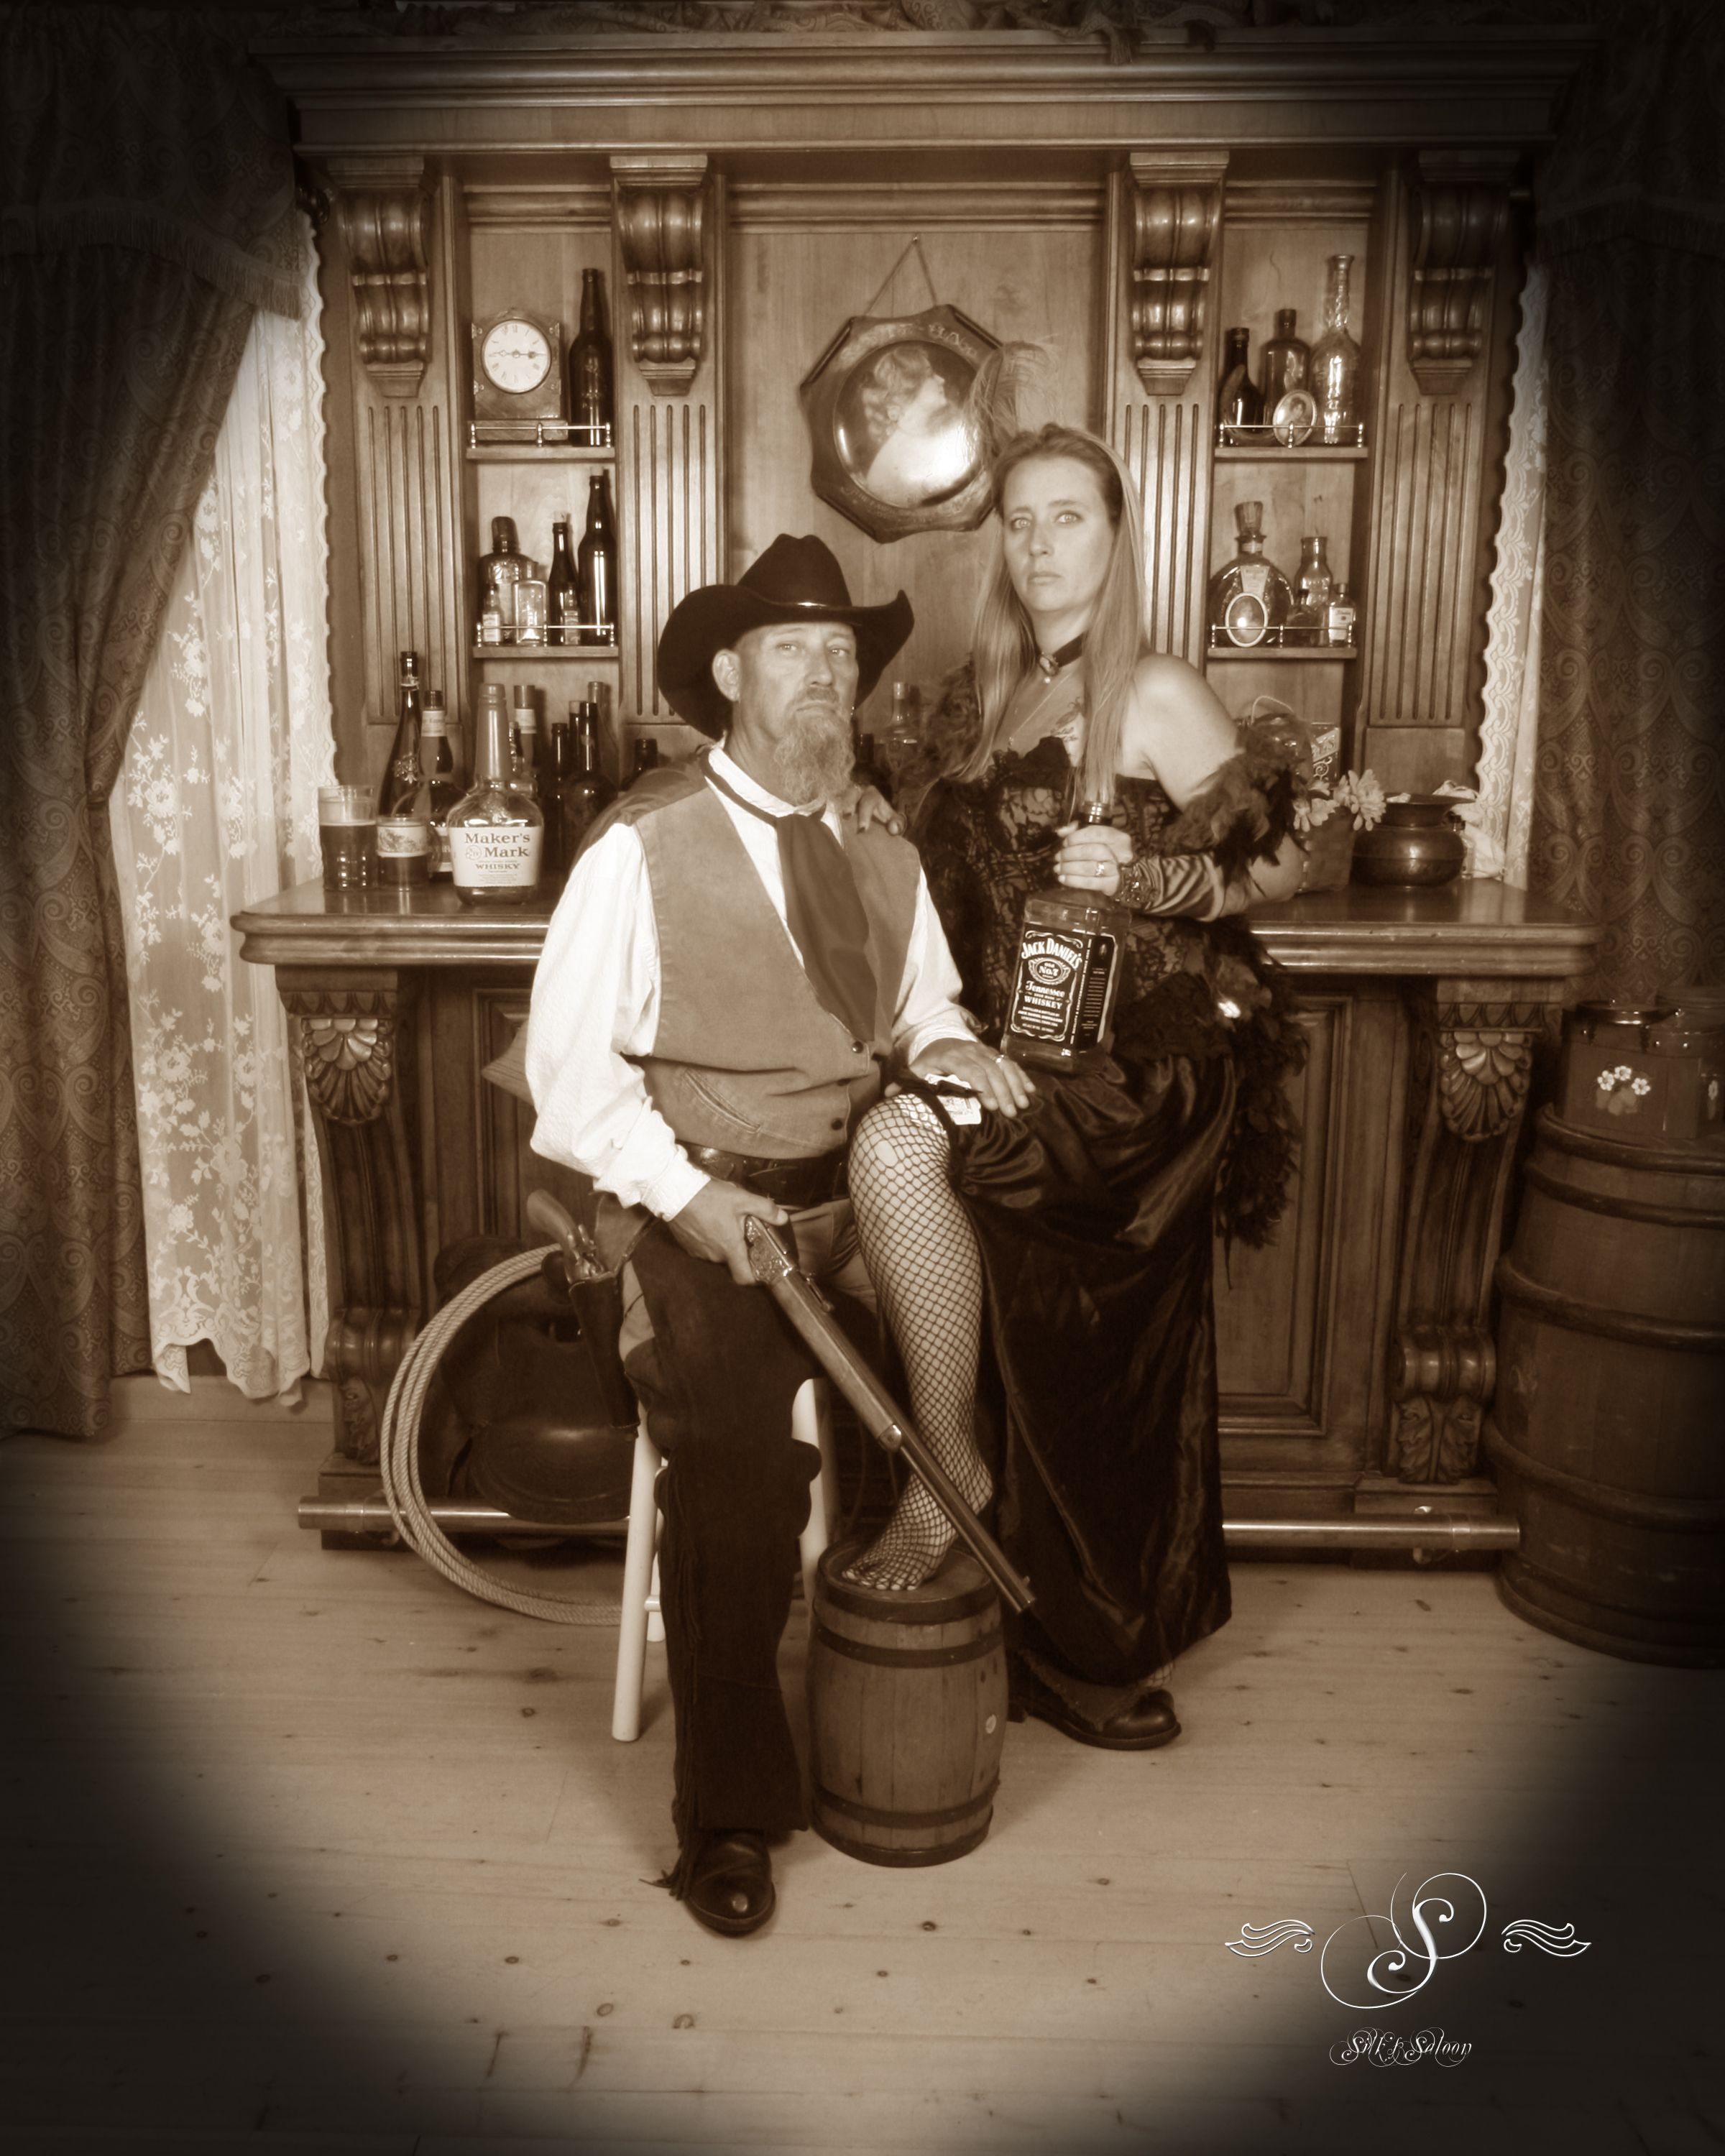 Photos Are Serious Business Couple Goals At Silk S Saloon Olde Tyme Photos In Glenwood Springs Co At Glenwood Caverns Ad Old Time Photos Saloon Girls Photo